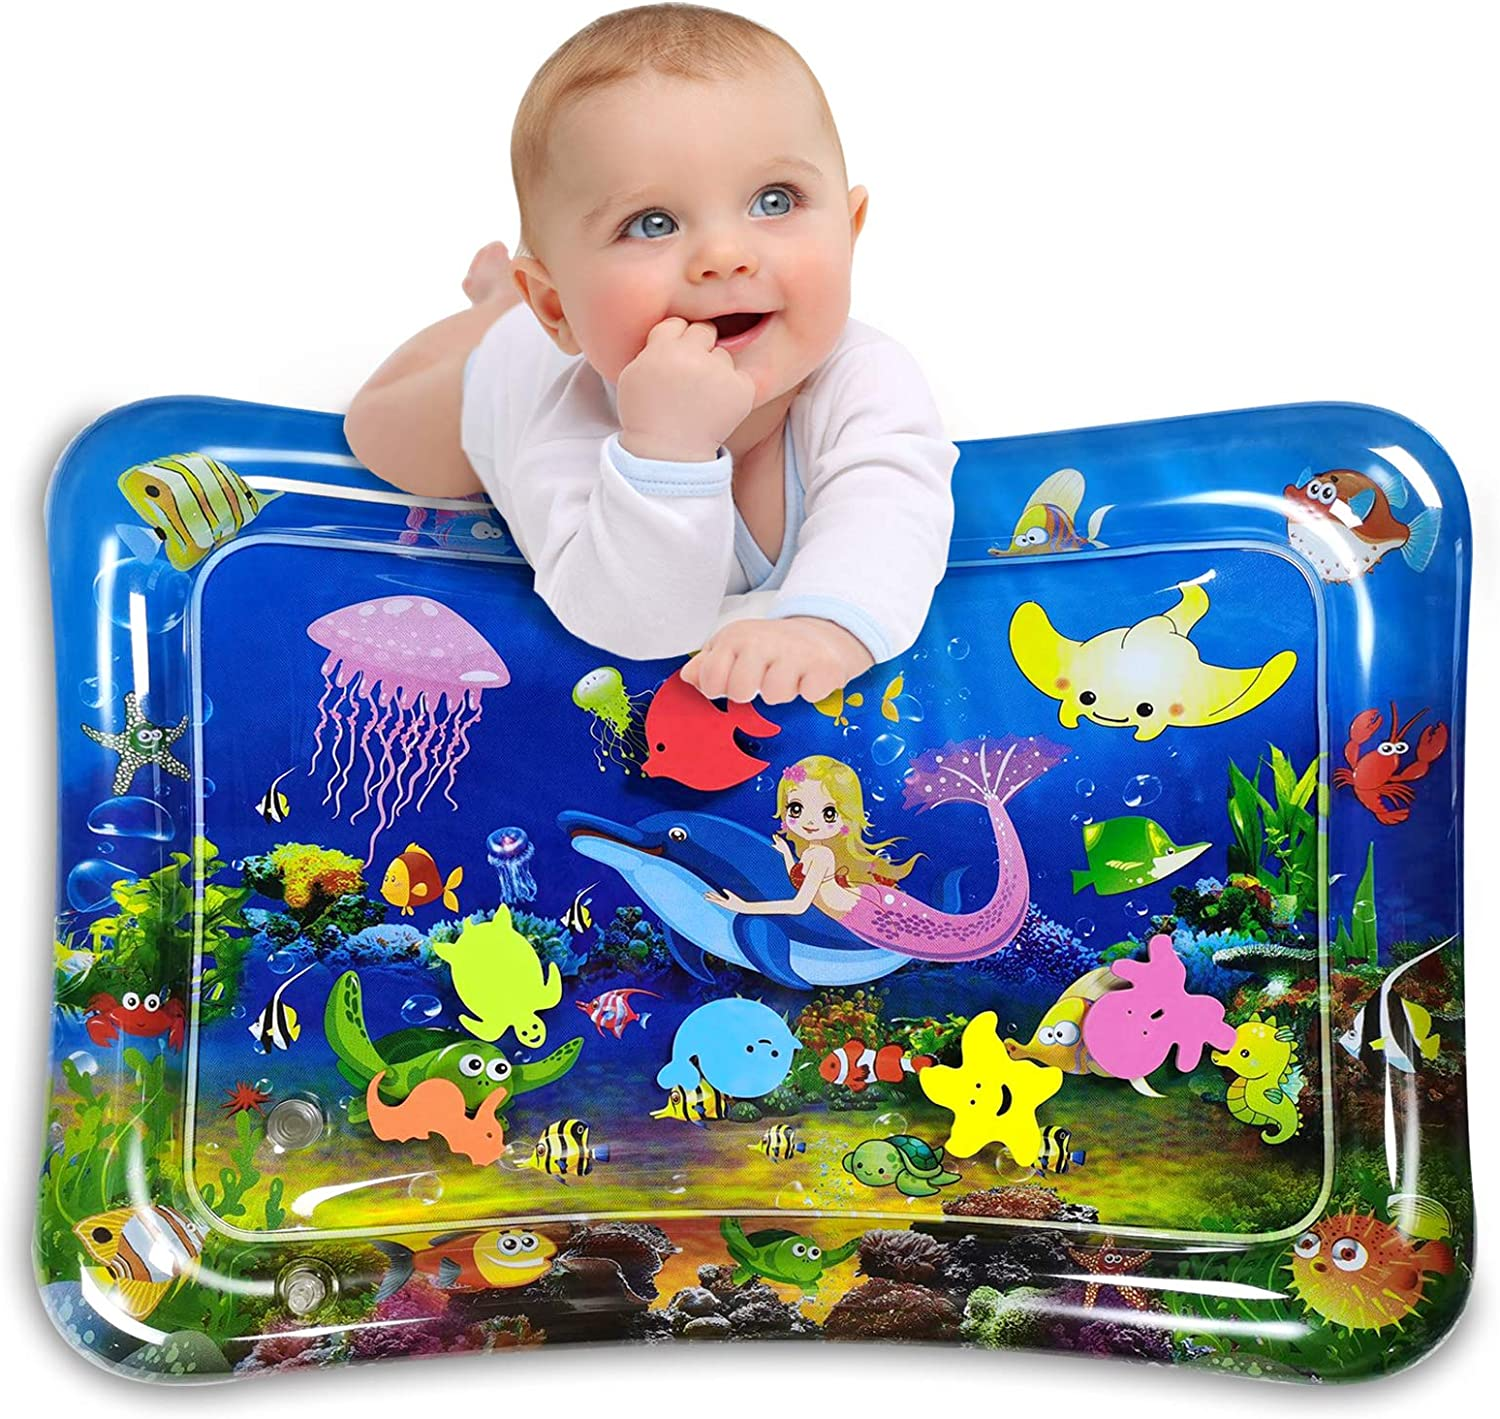 Infinno Inflatable Tummy Time Mat Premium Baby Water Play Mat for Infants and Toddlers Activity Play Center Baby Toys 3 6 9 12 Months, Strengthen Your Babies' Muscles, Mermaid Theme